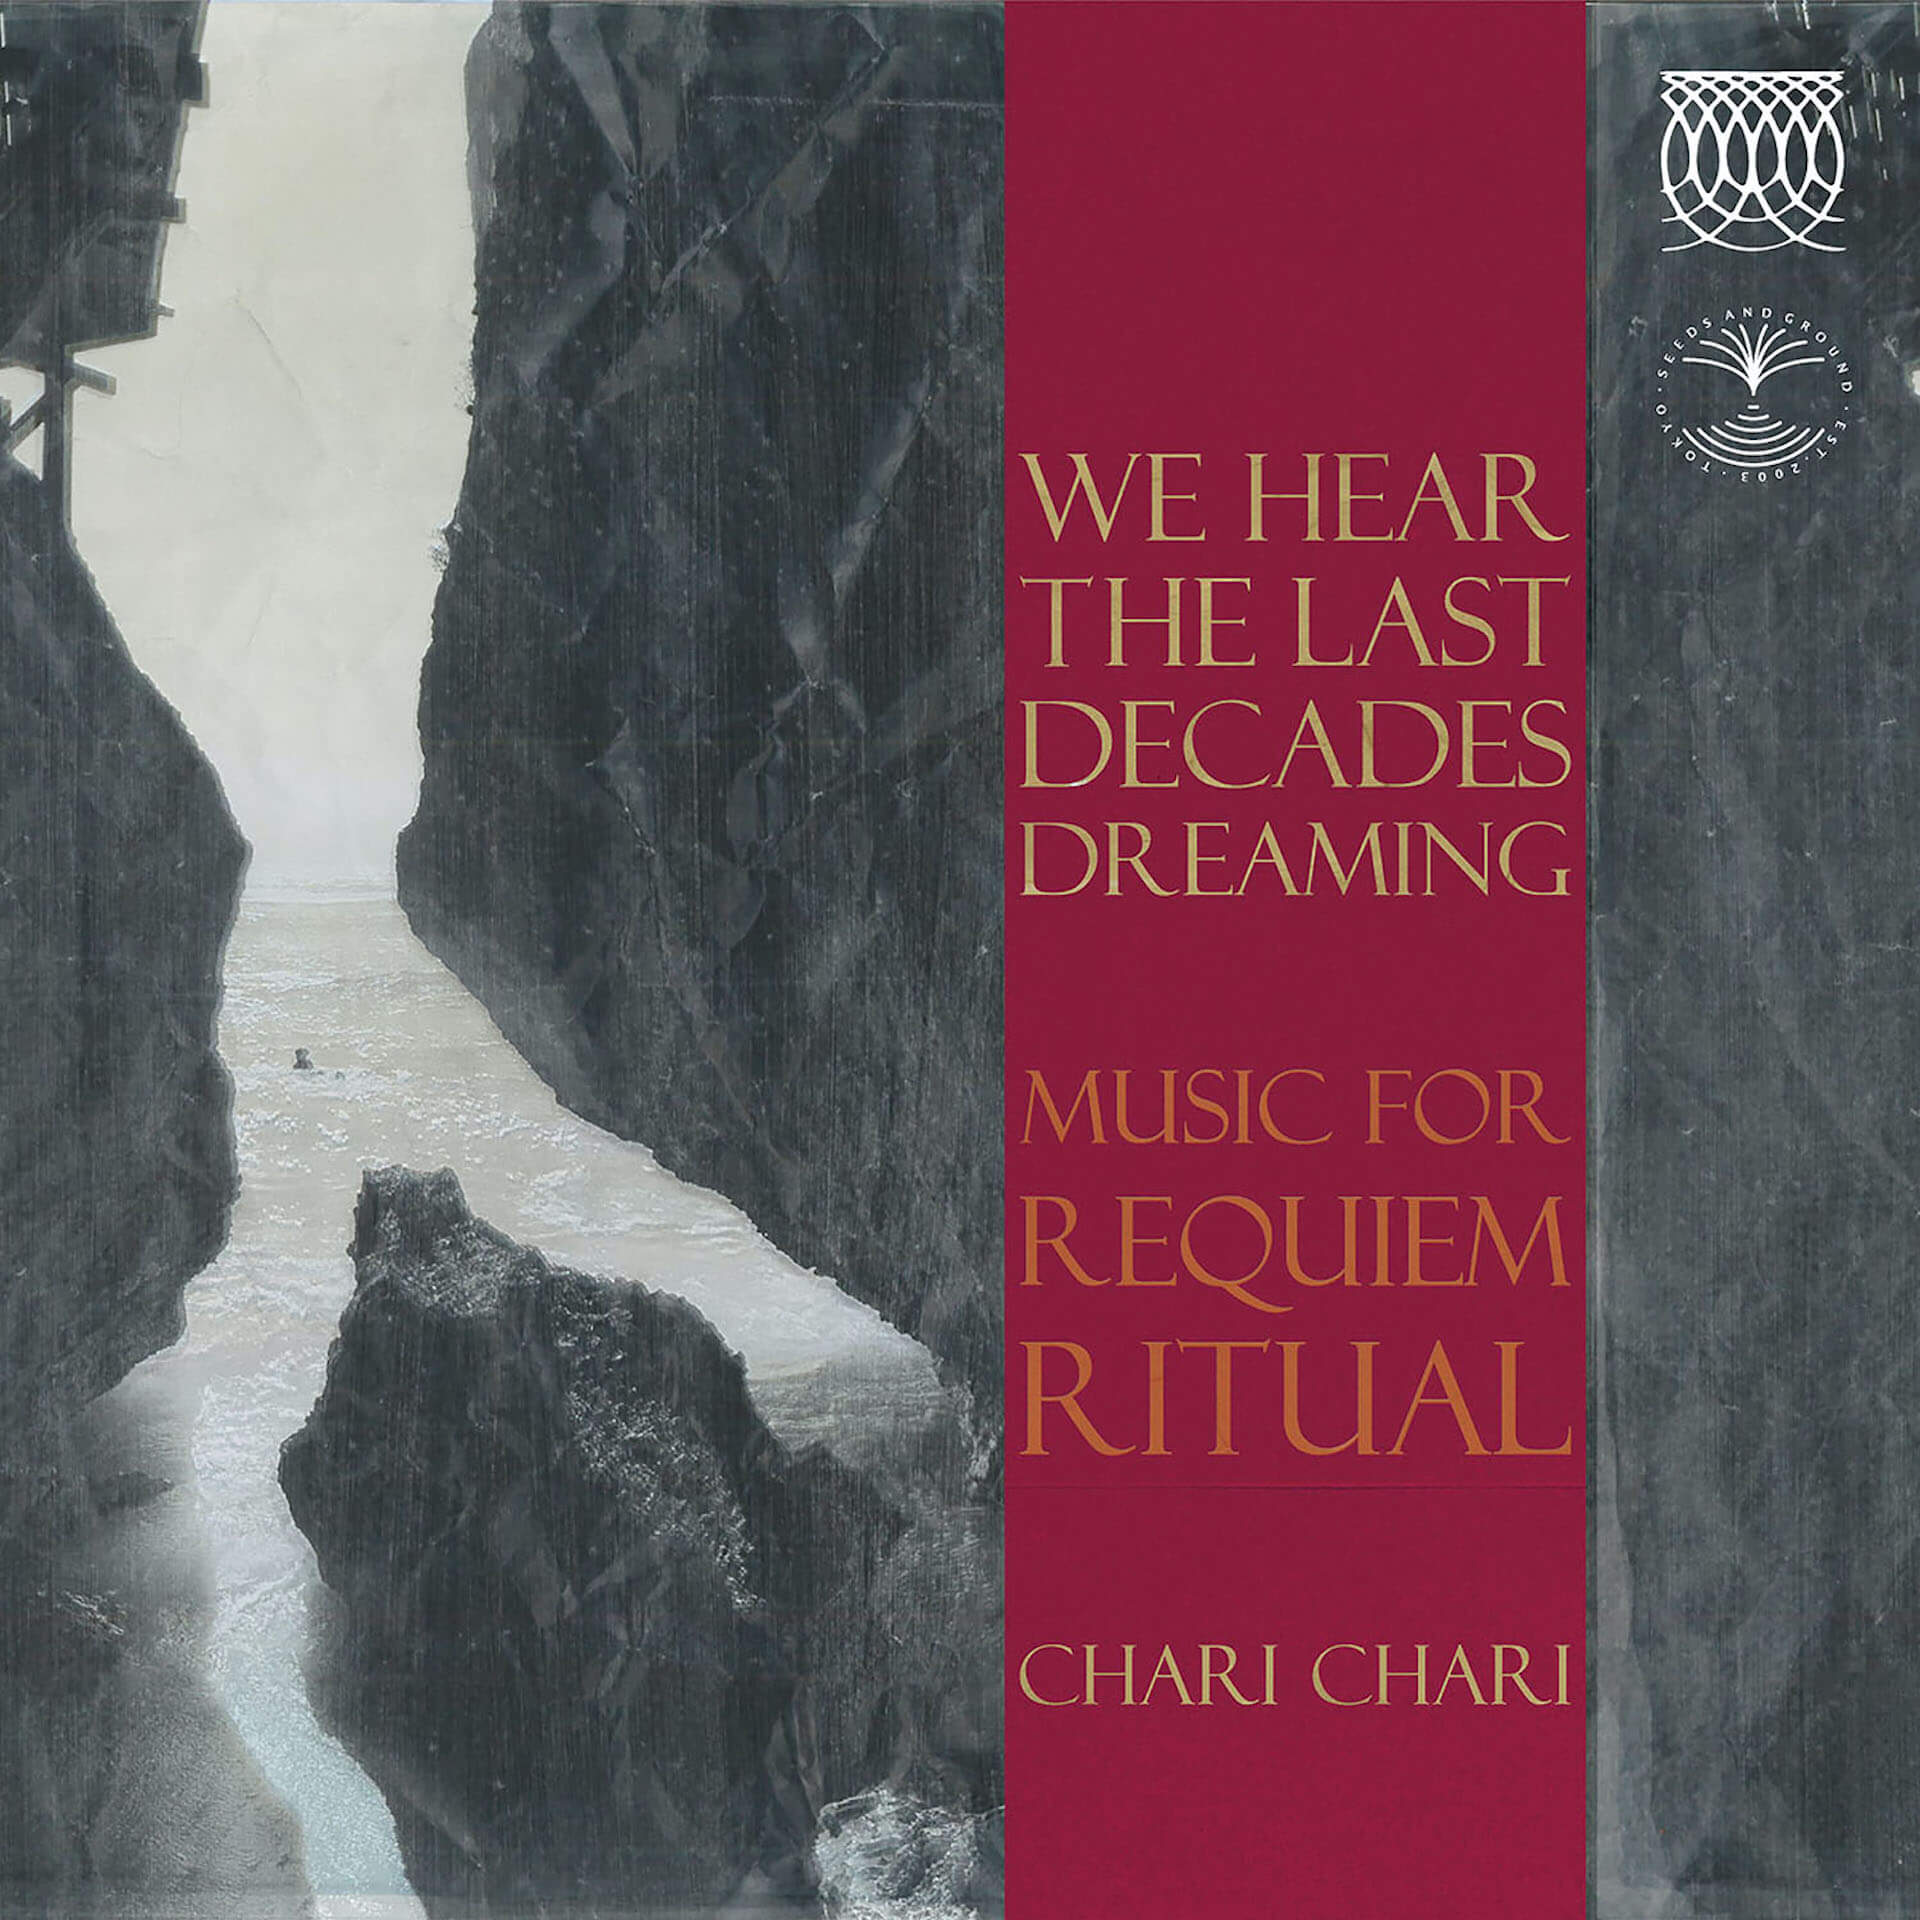 Kaoru InoueによるChari Chari18年ぶりのアルバム『We hear the last decades dreaming』リリースを記念しSUPER DOMMUNEで20人限定イベントが開催! music200721_kaoruinoue_superdommune_01